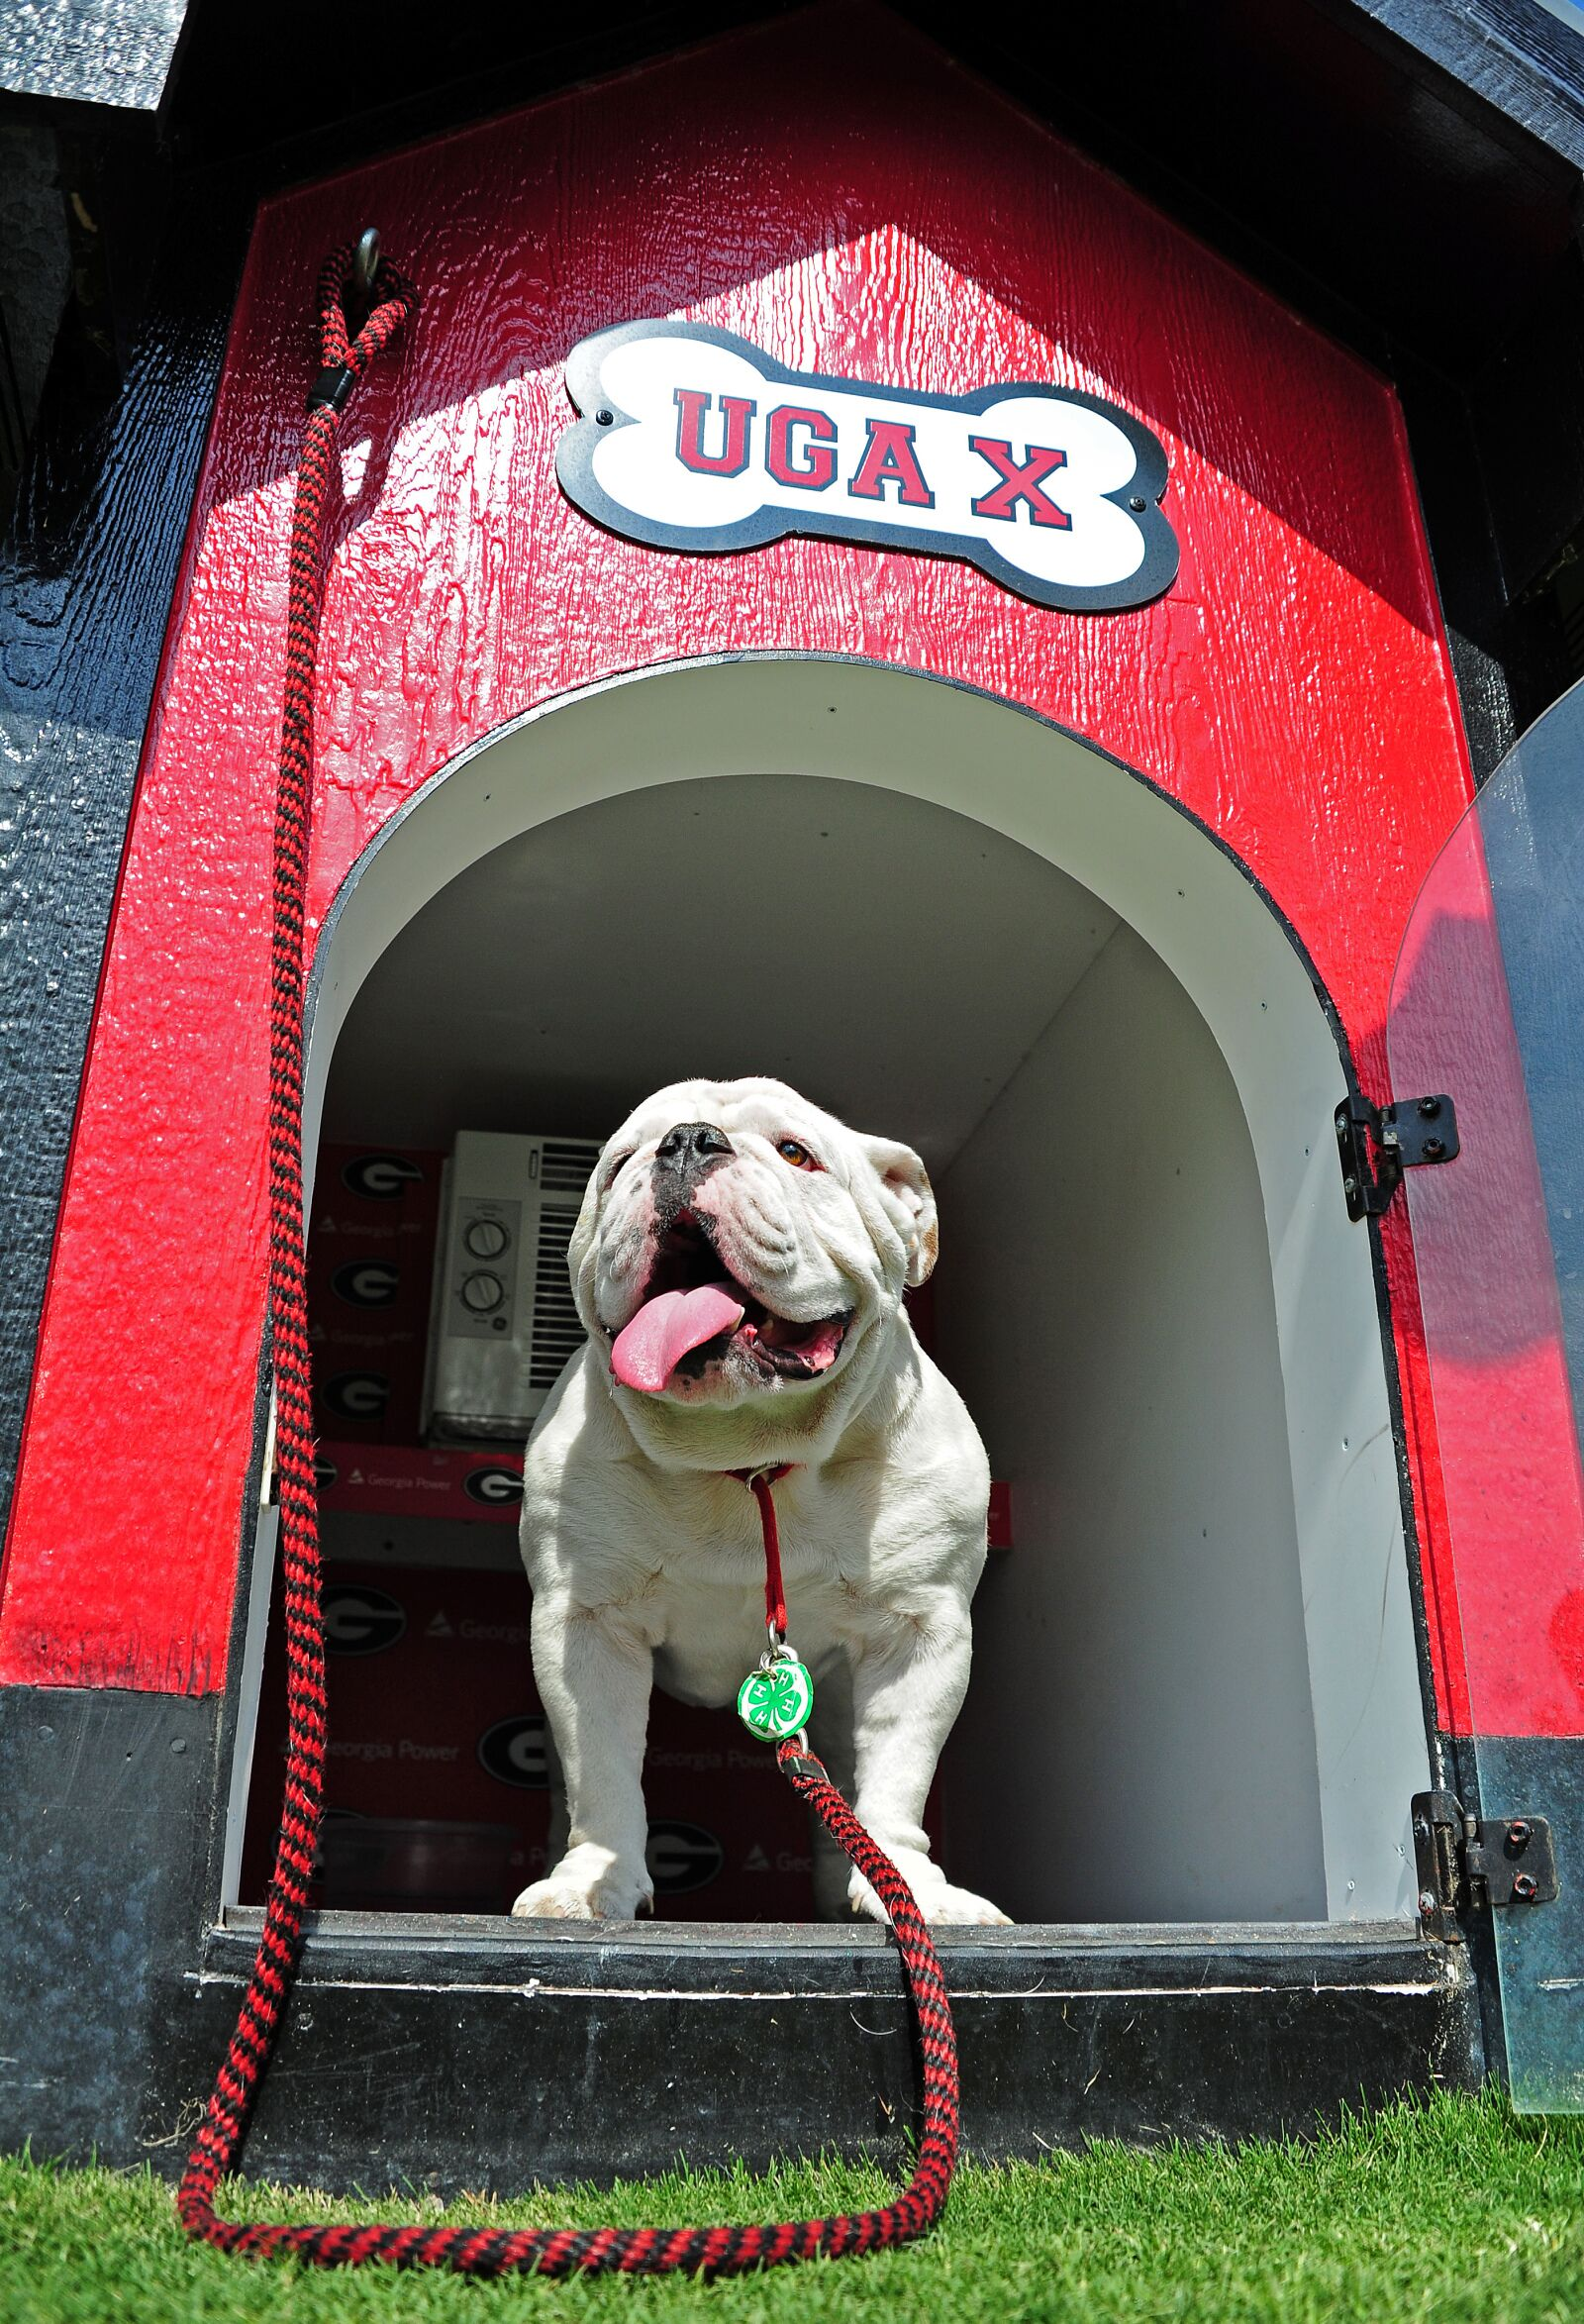 2019 canine college football roundup: Week 4